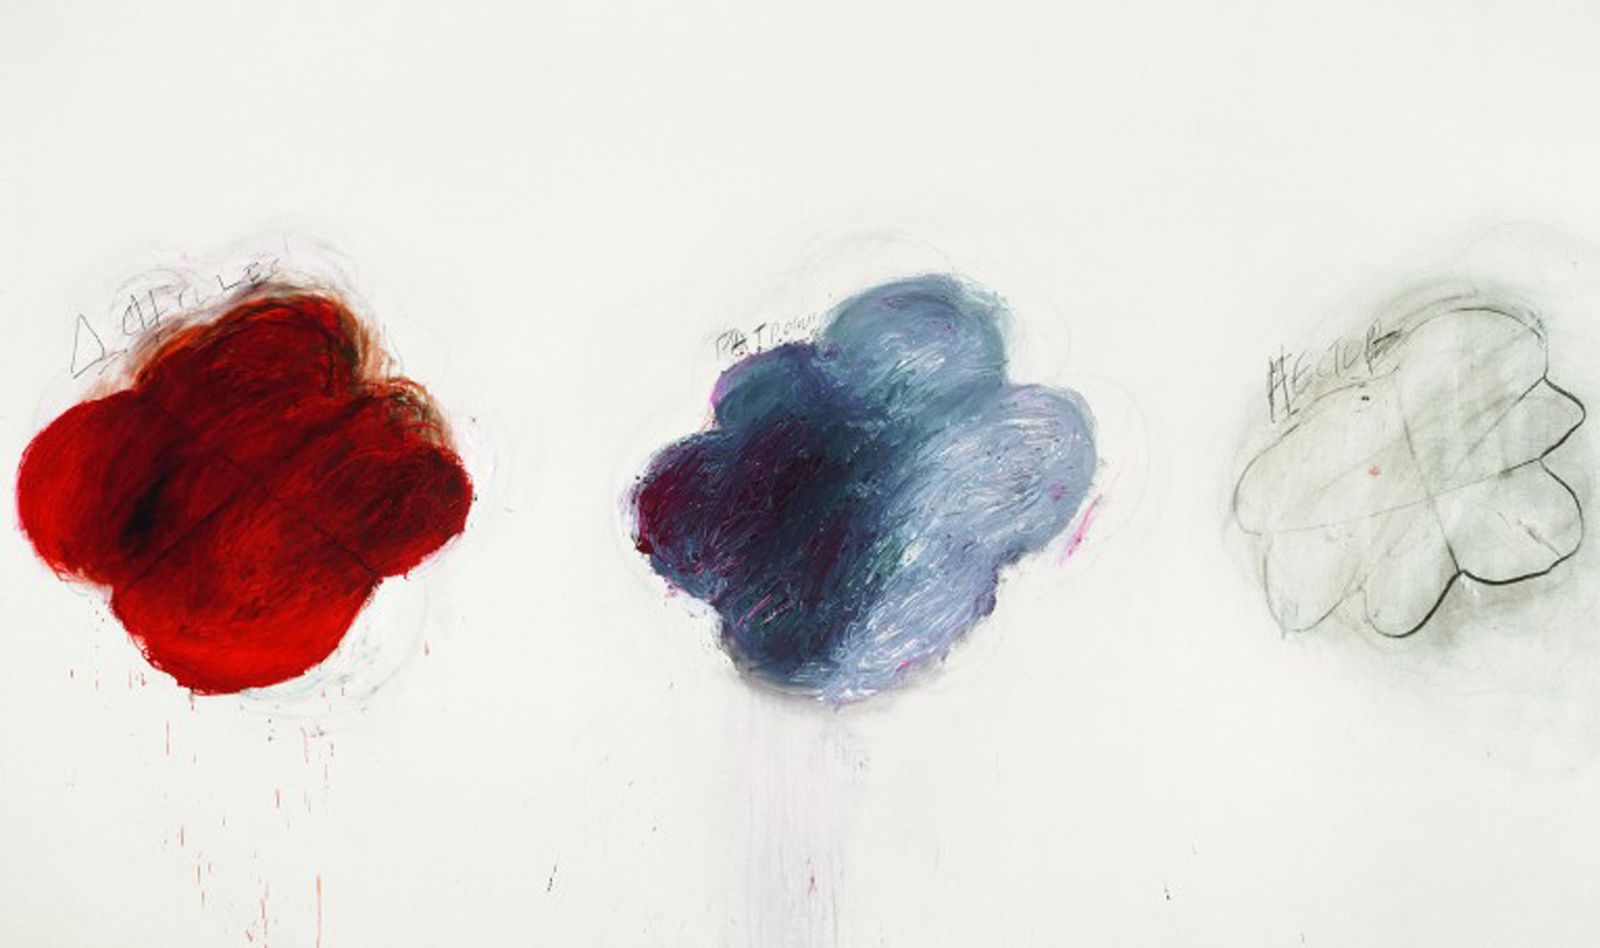 """Achilles Mourning the Death of Patroclus (Achille pleurant la mort de Patrocle)"", 1962 de Cy TWOMBLY"